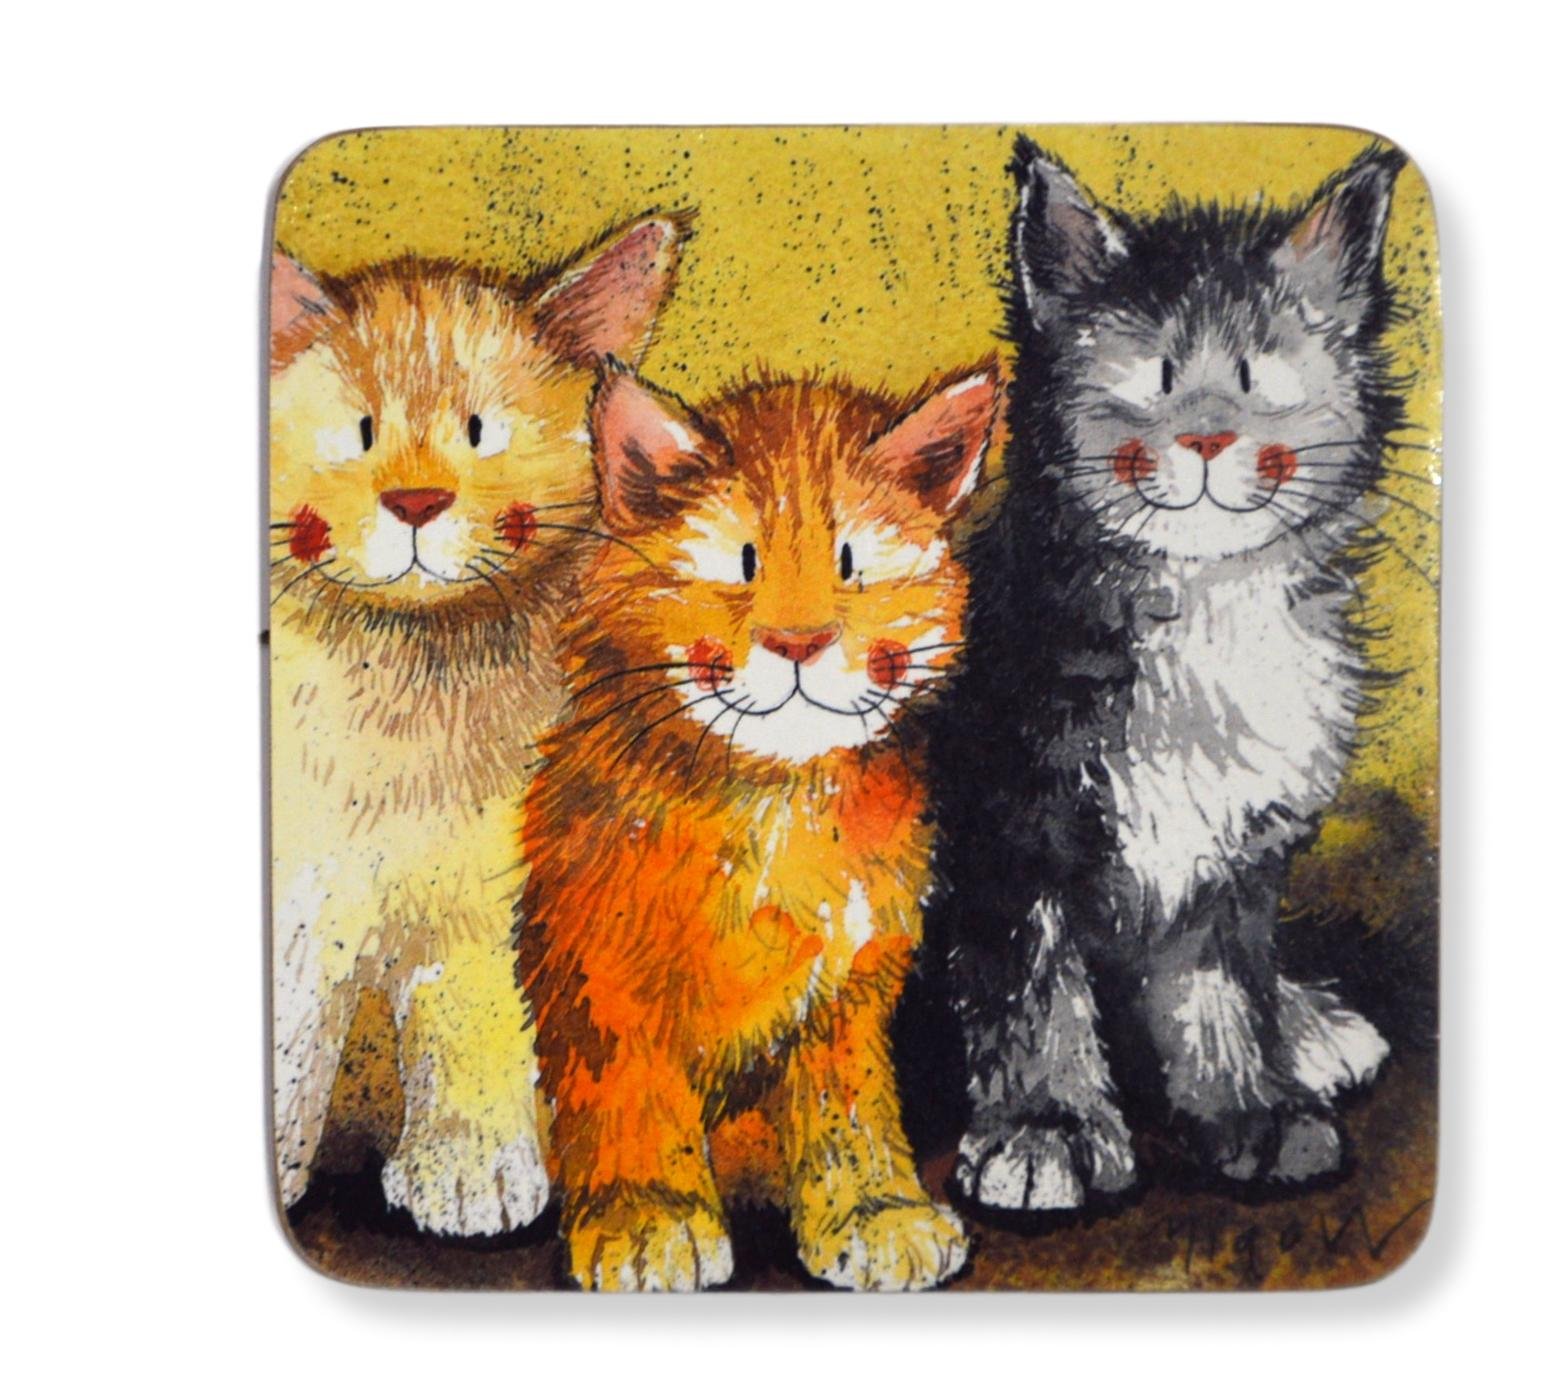 Set of 2 Rodger Dodger Cat Coasters